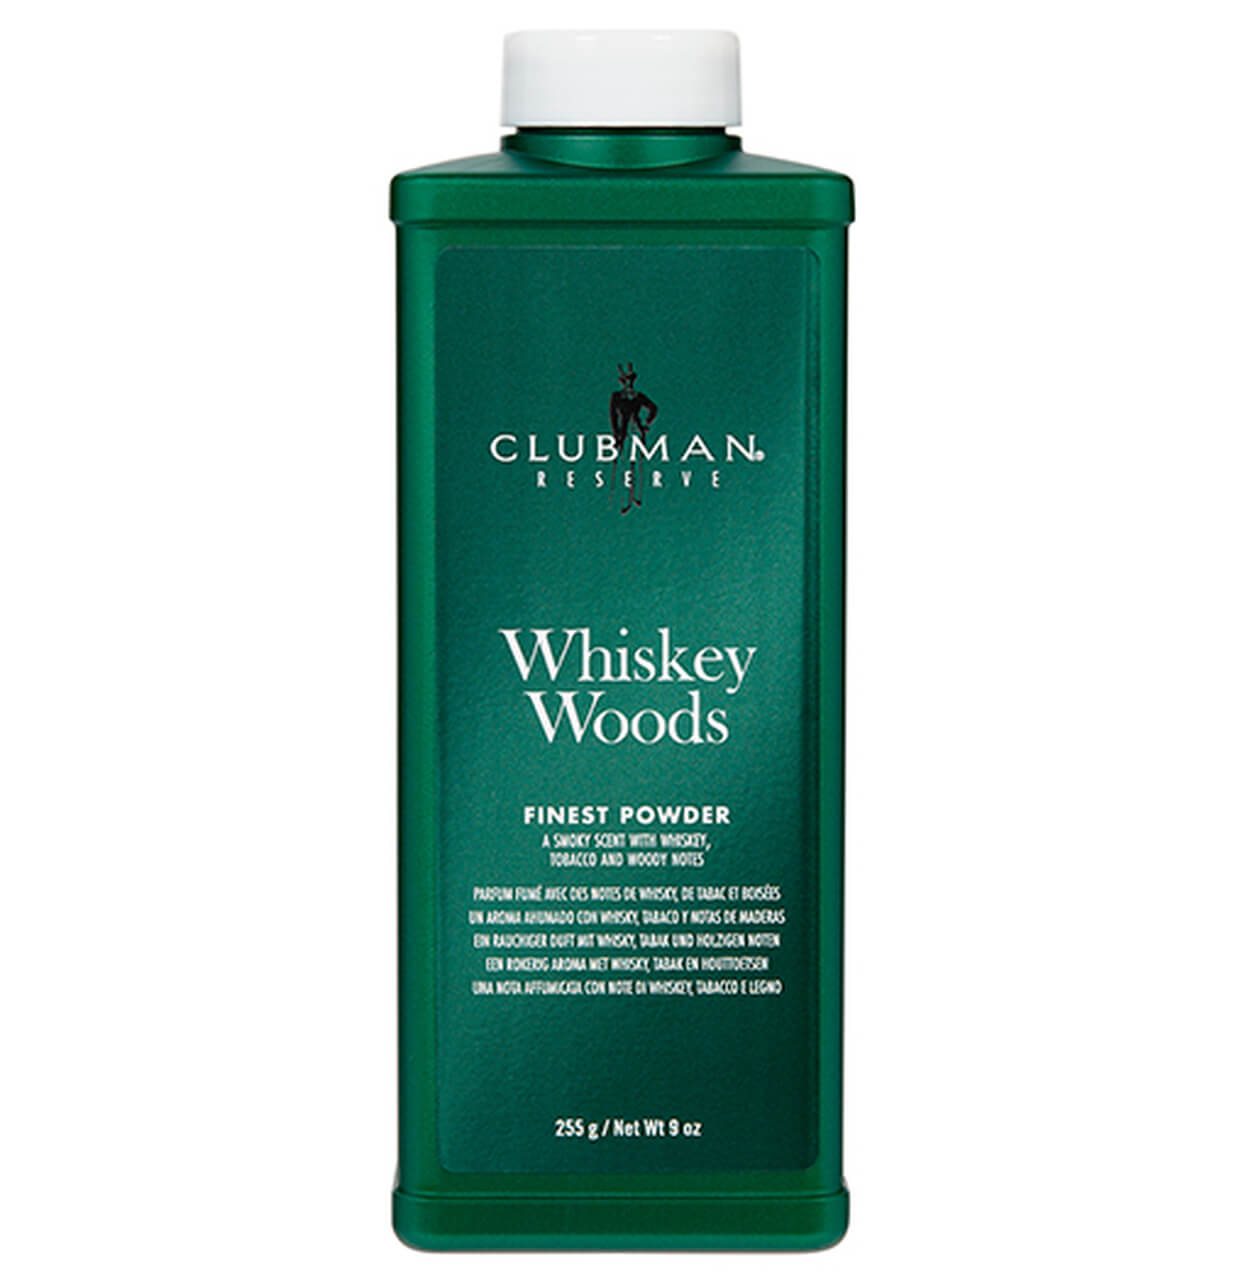 Bột Clubman Reserve Whiskey Woods Powder